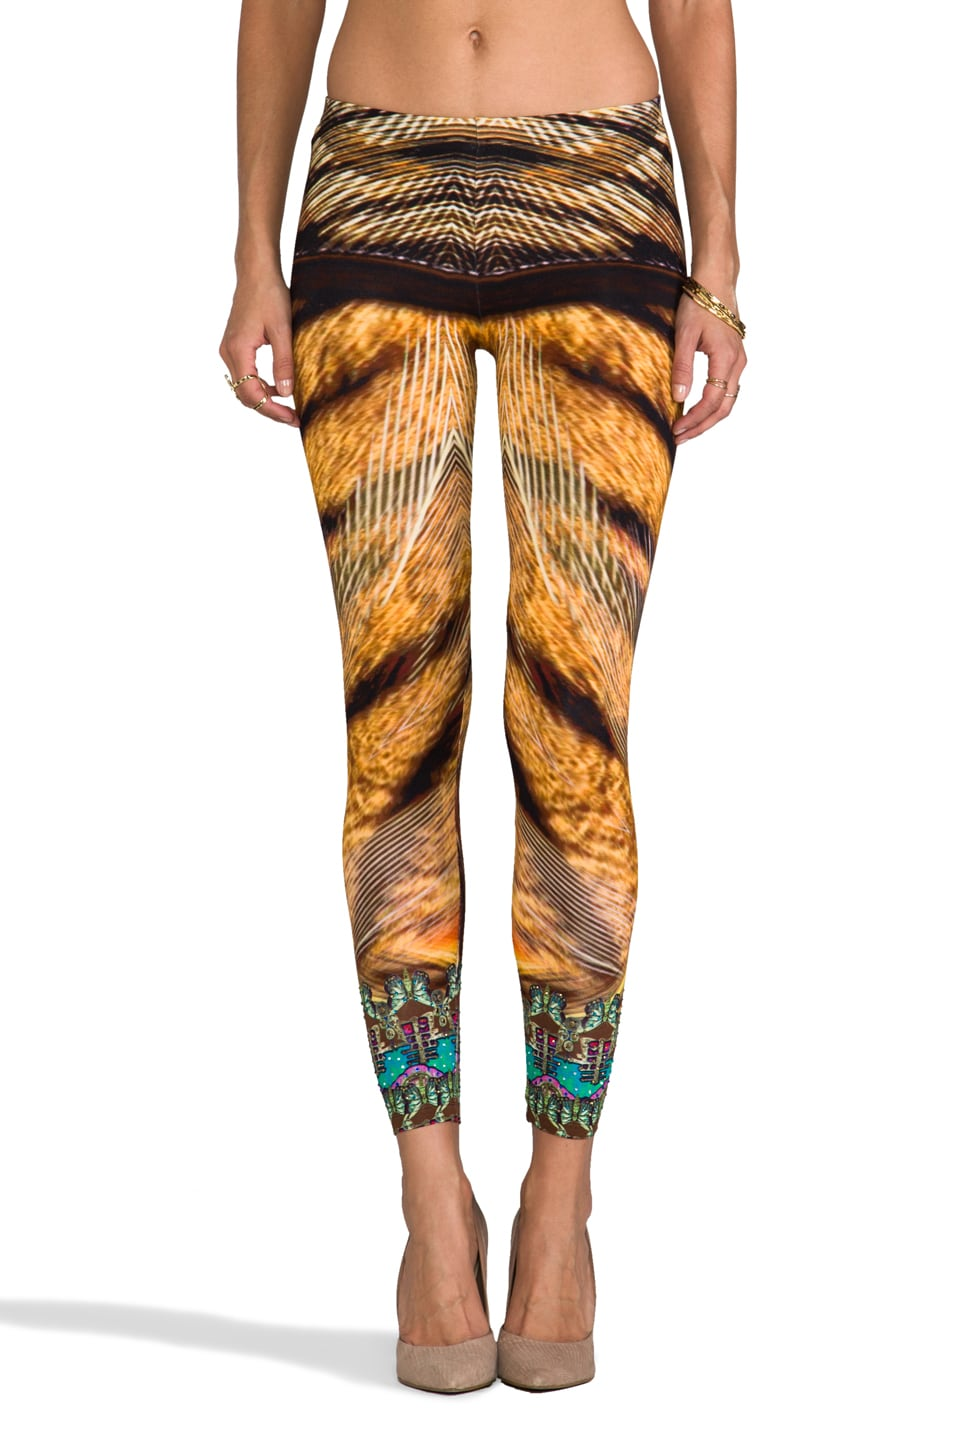 Camilla Animism Legging in Tigri